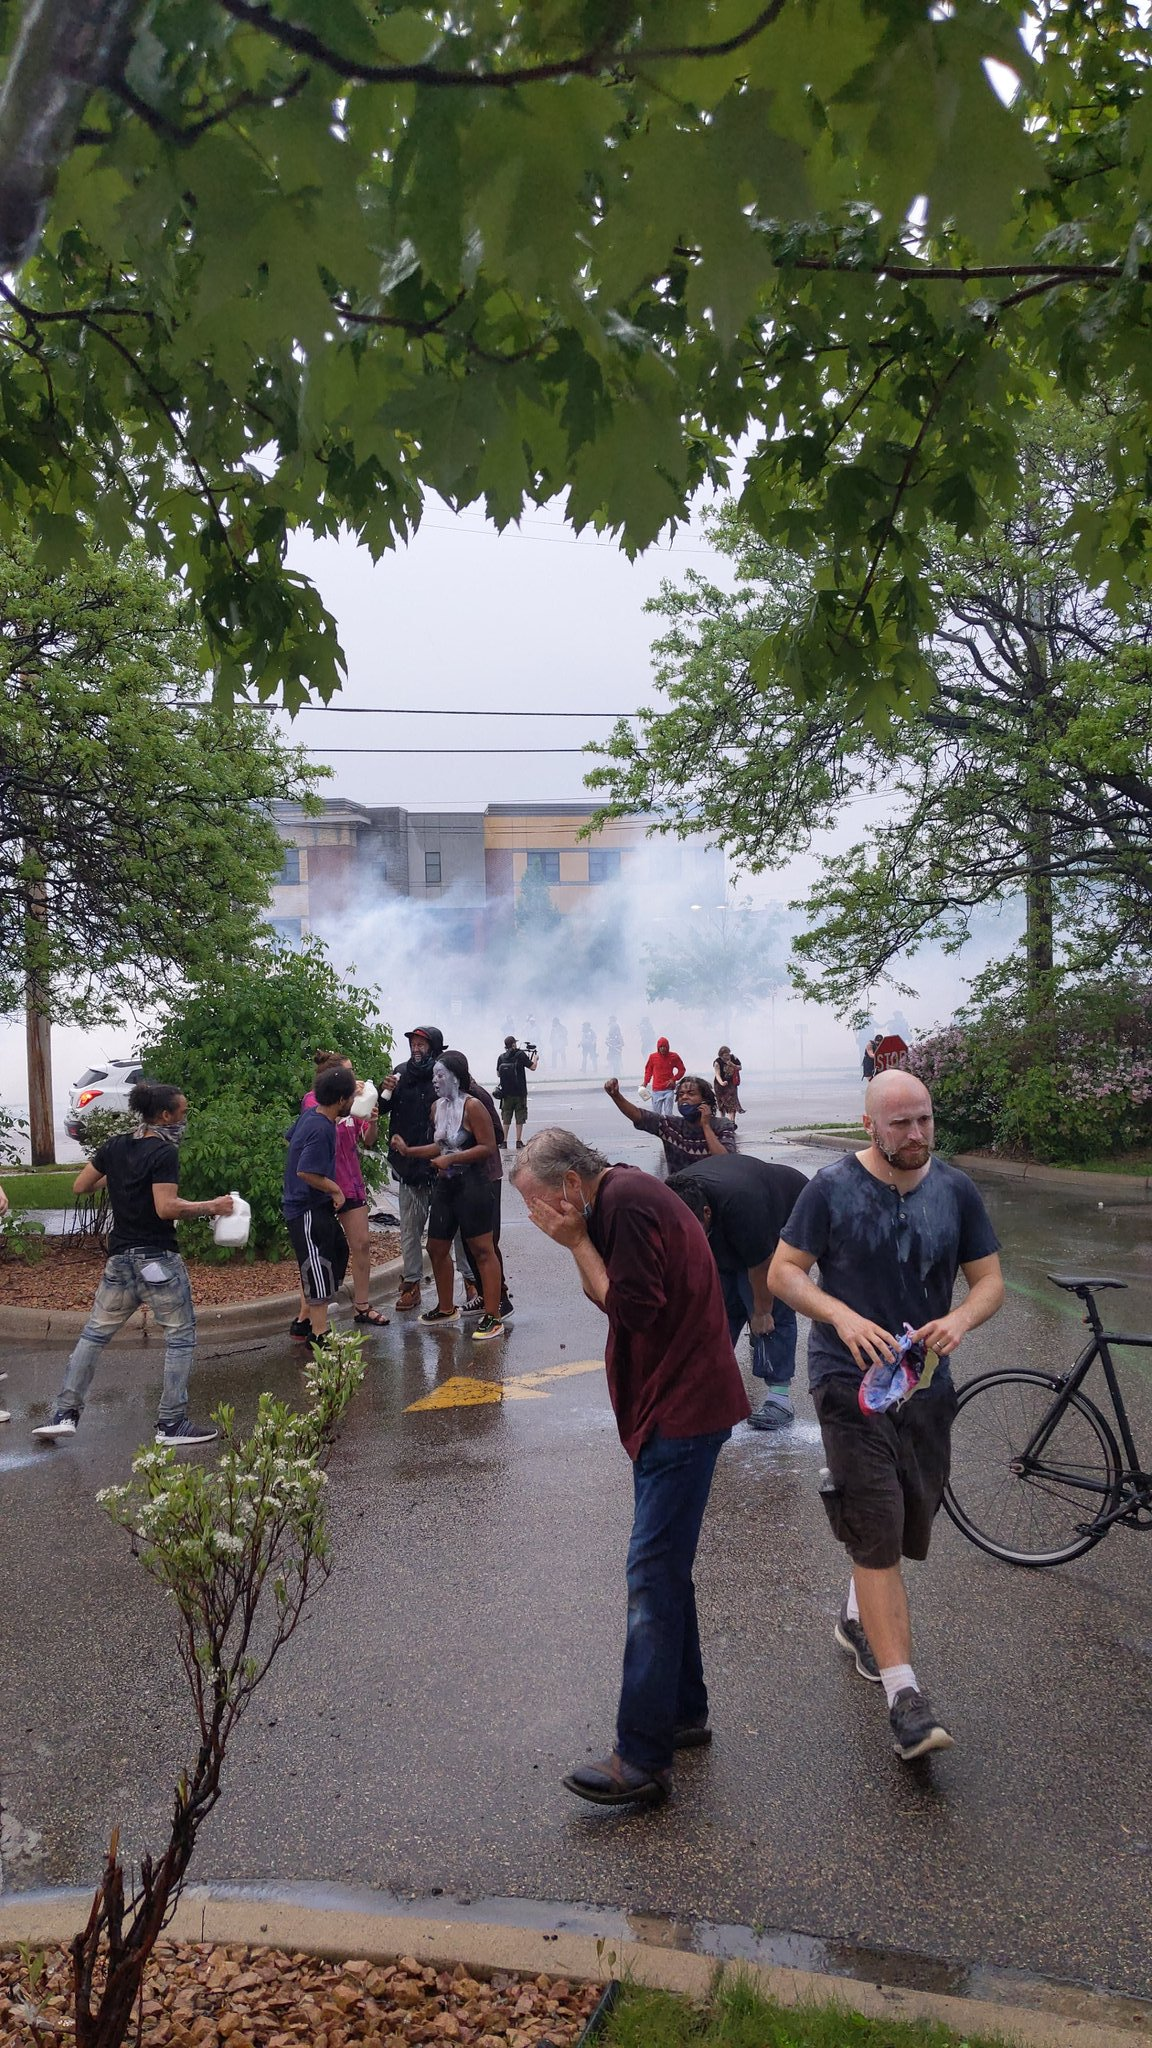 Riots In Minneapolis After Police Officer Kills Handcuffed Black Man